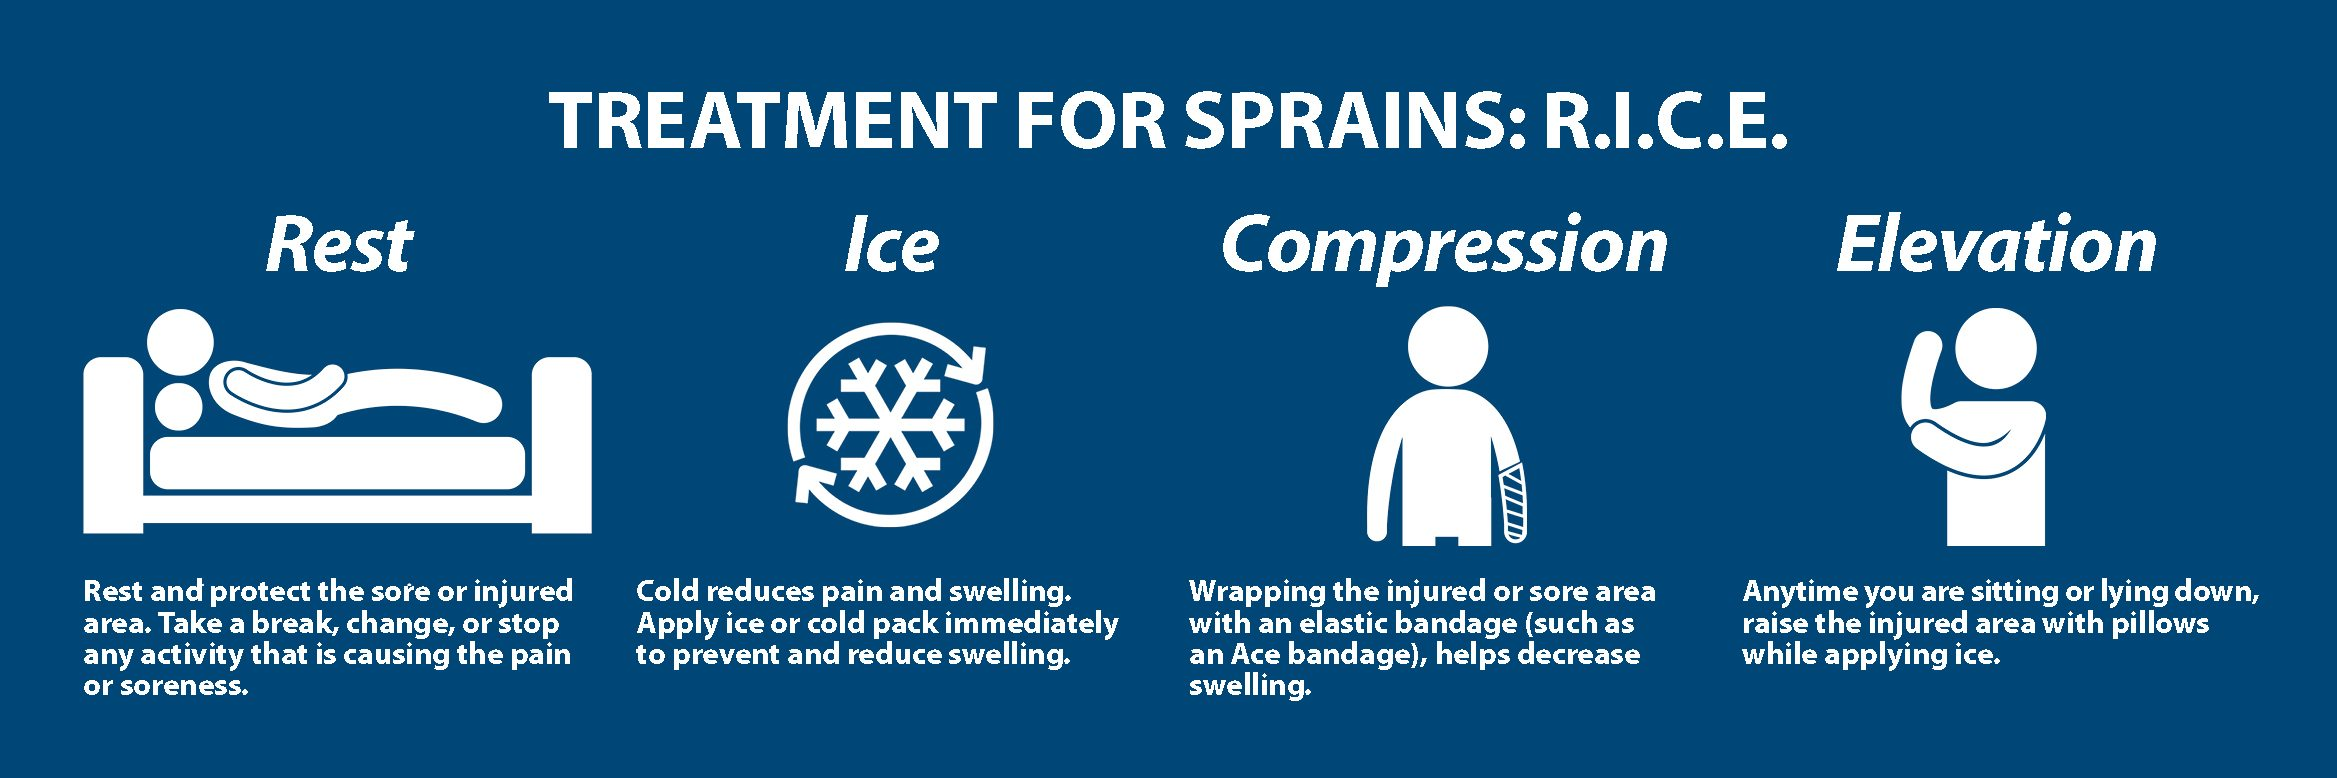 Wrist Sprains Treatment